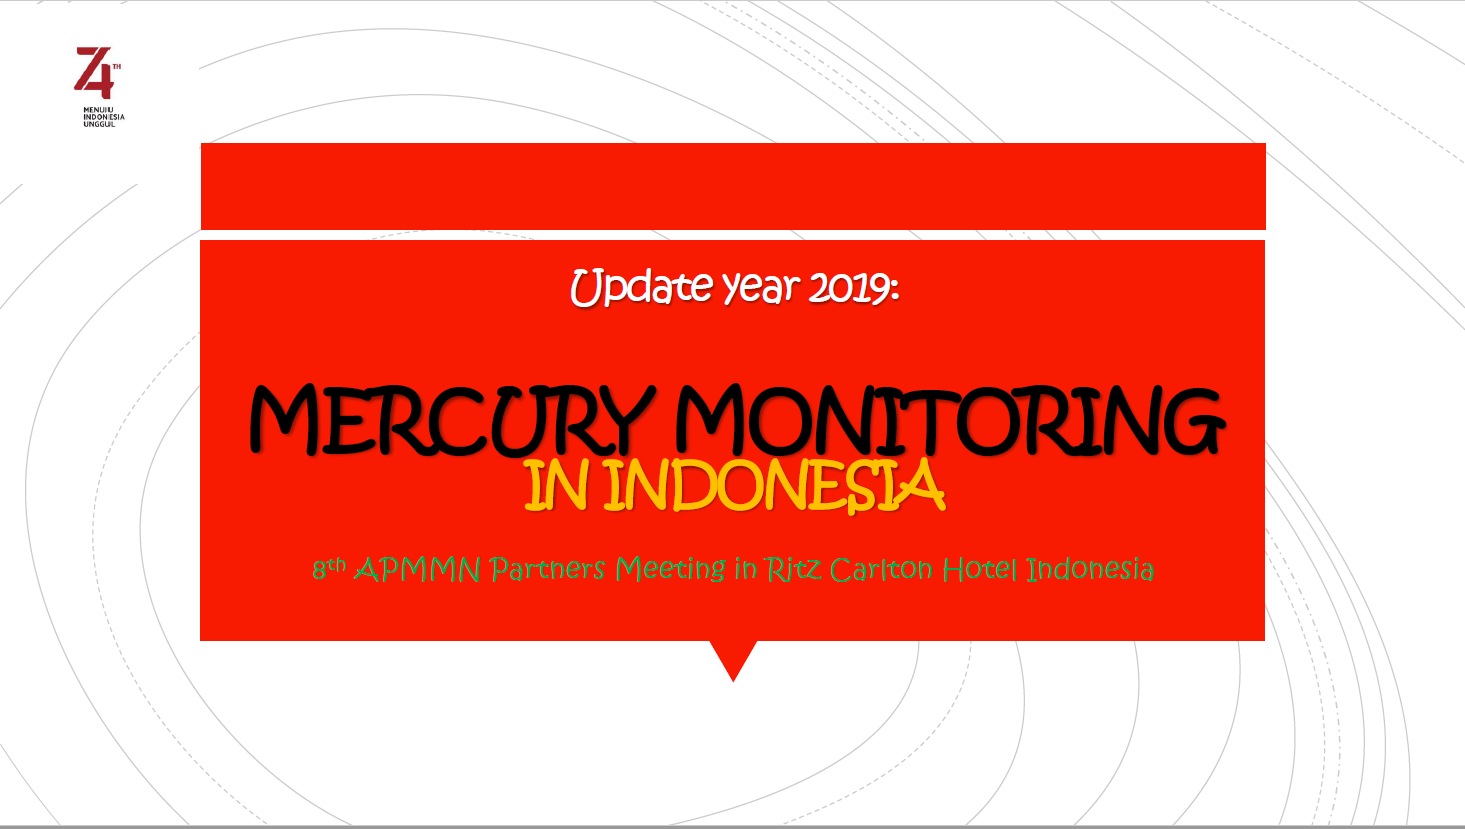 First page of Mercury Monitoring in Indonesia